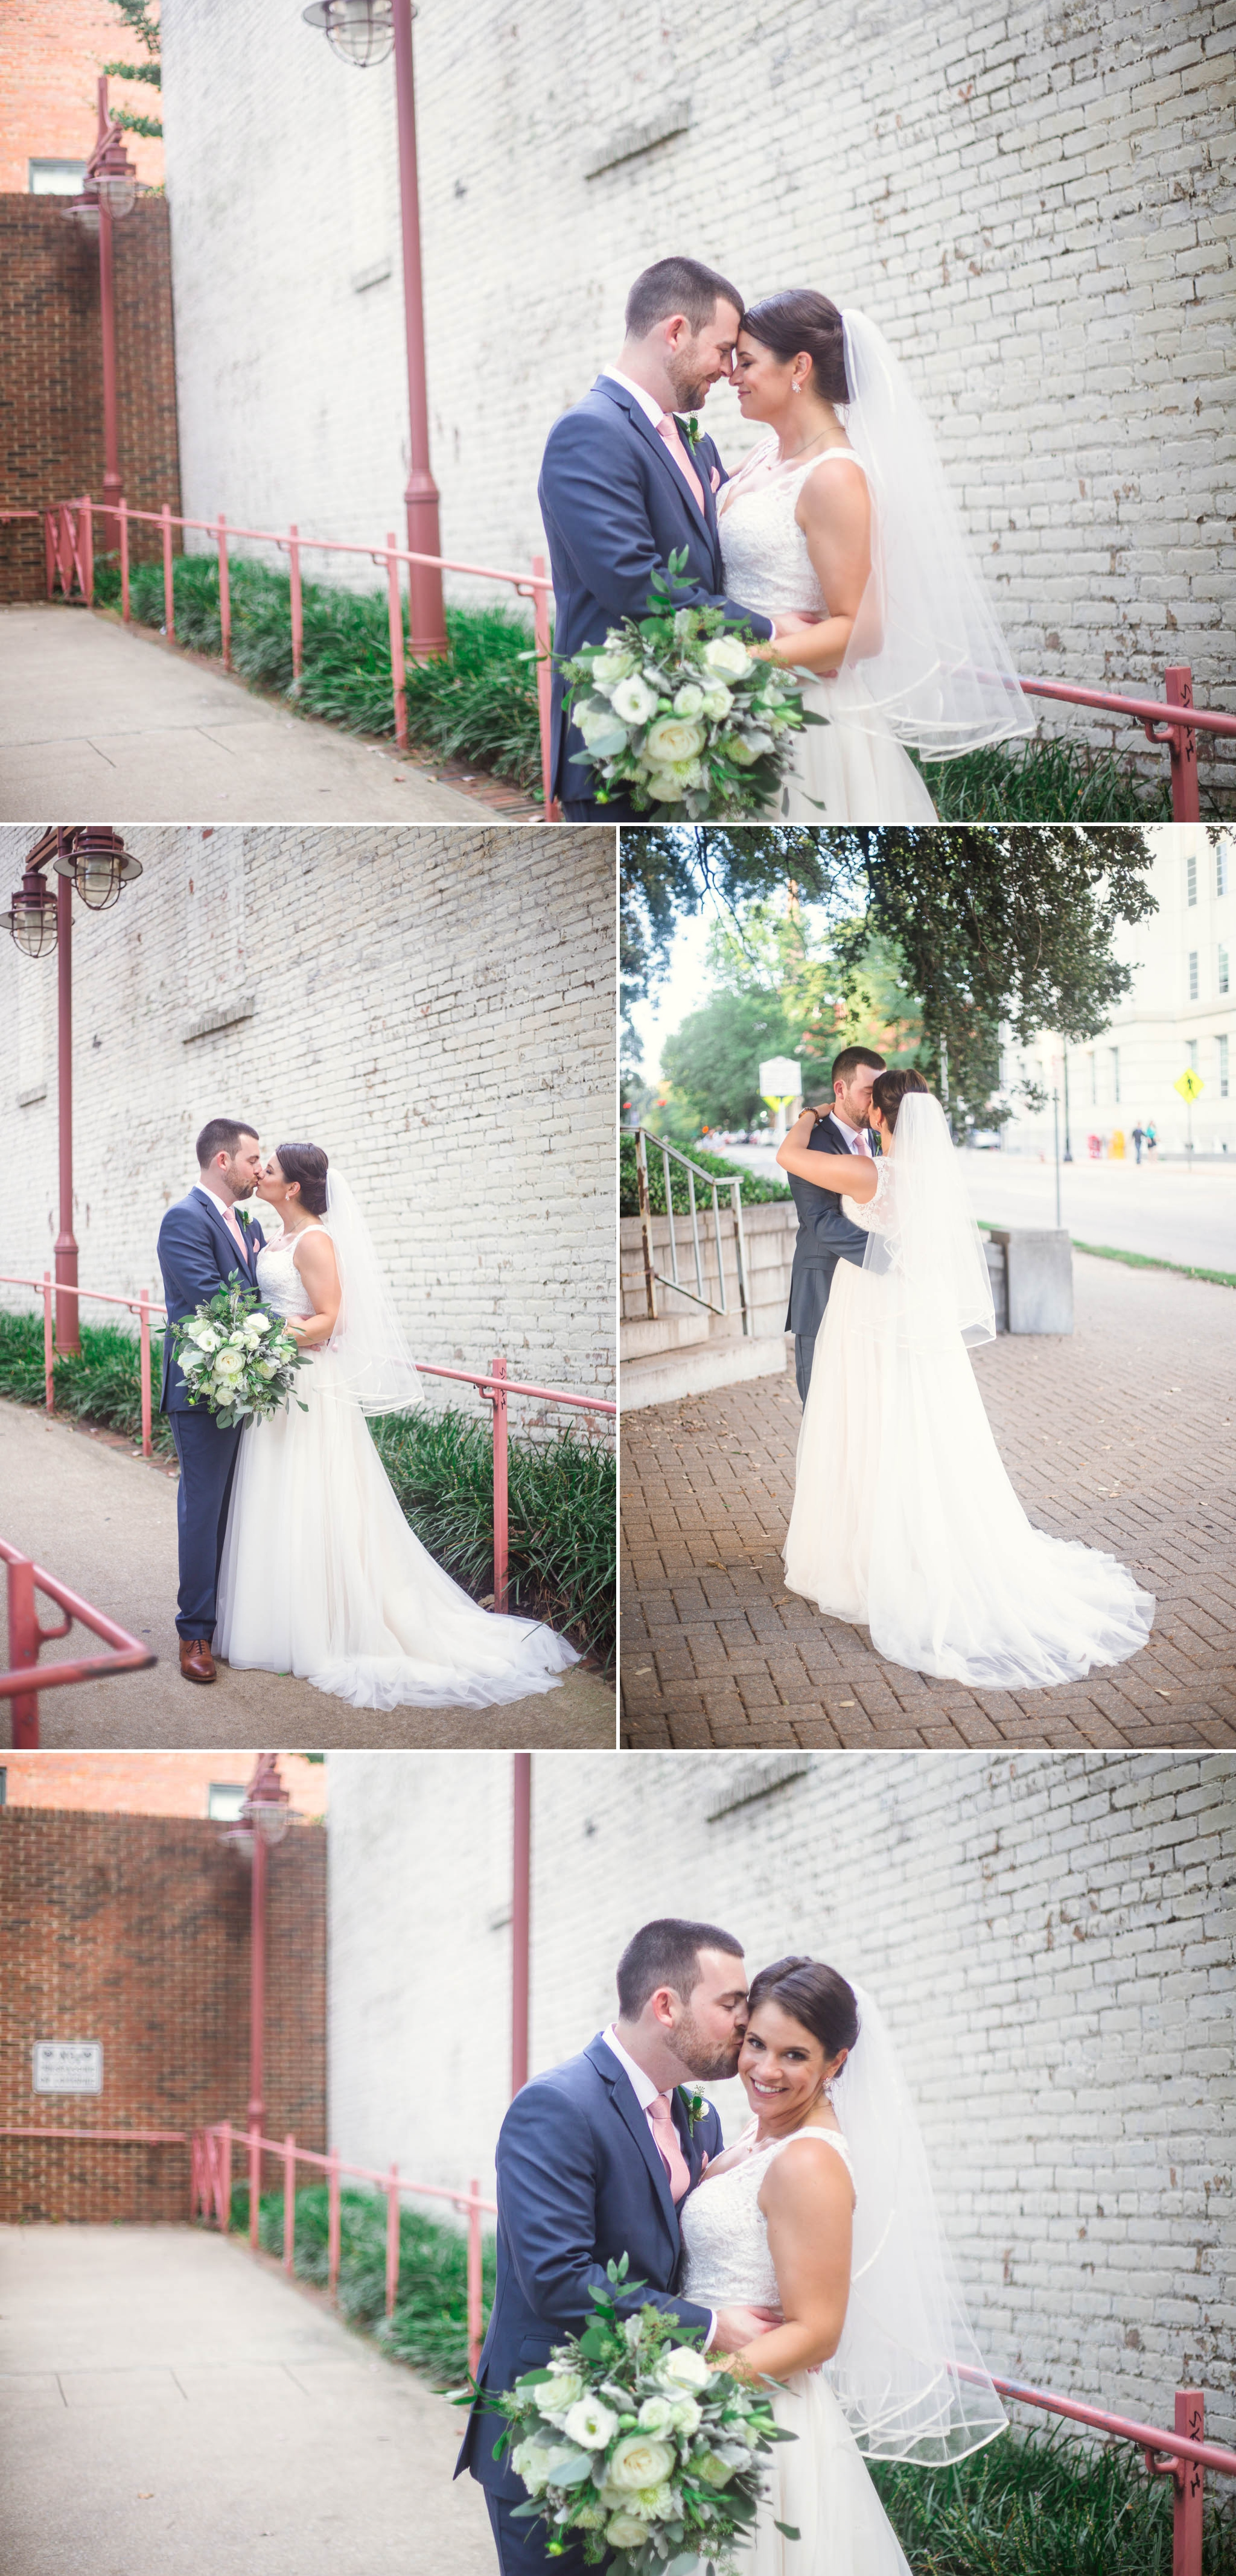 Portraits of Bride and Groom Downtown Raleigh - Clare + Wallace - The Jiddy Space - Raleigh North Carolina Wedding Photographer